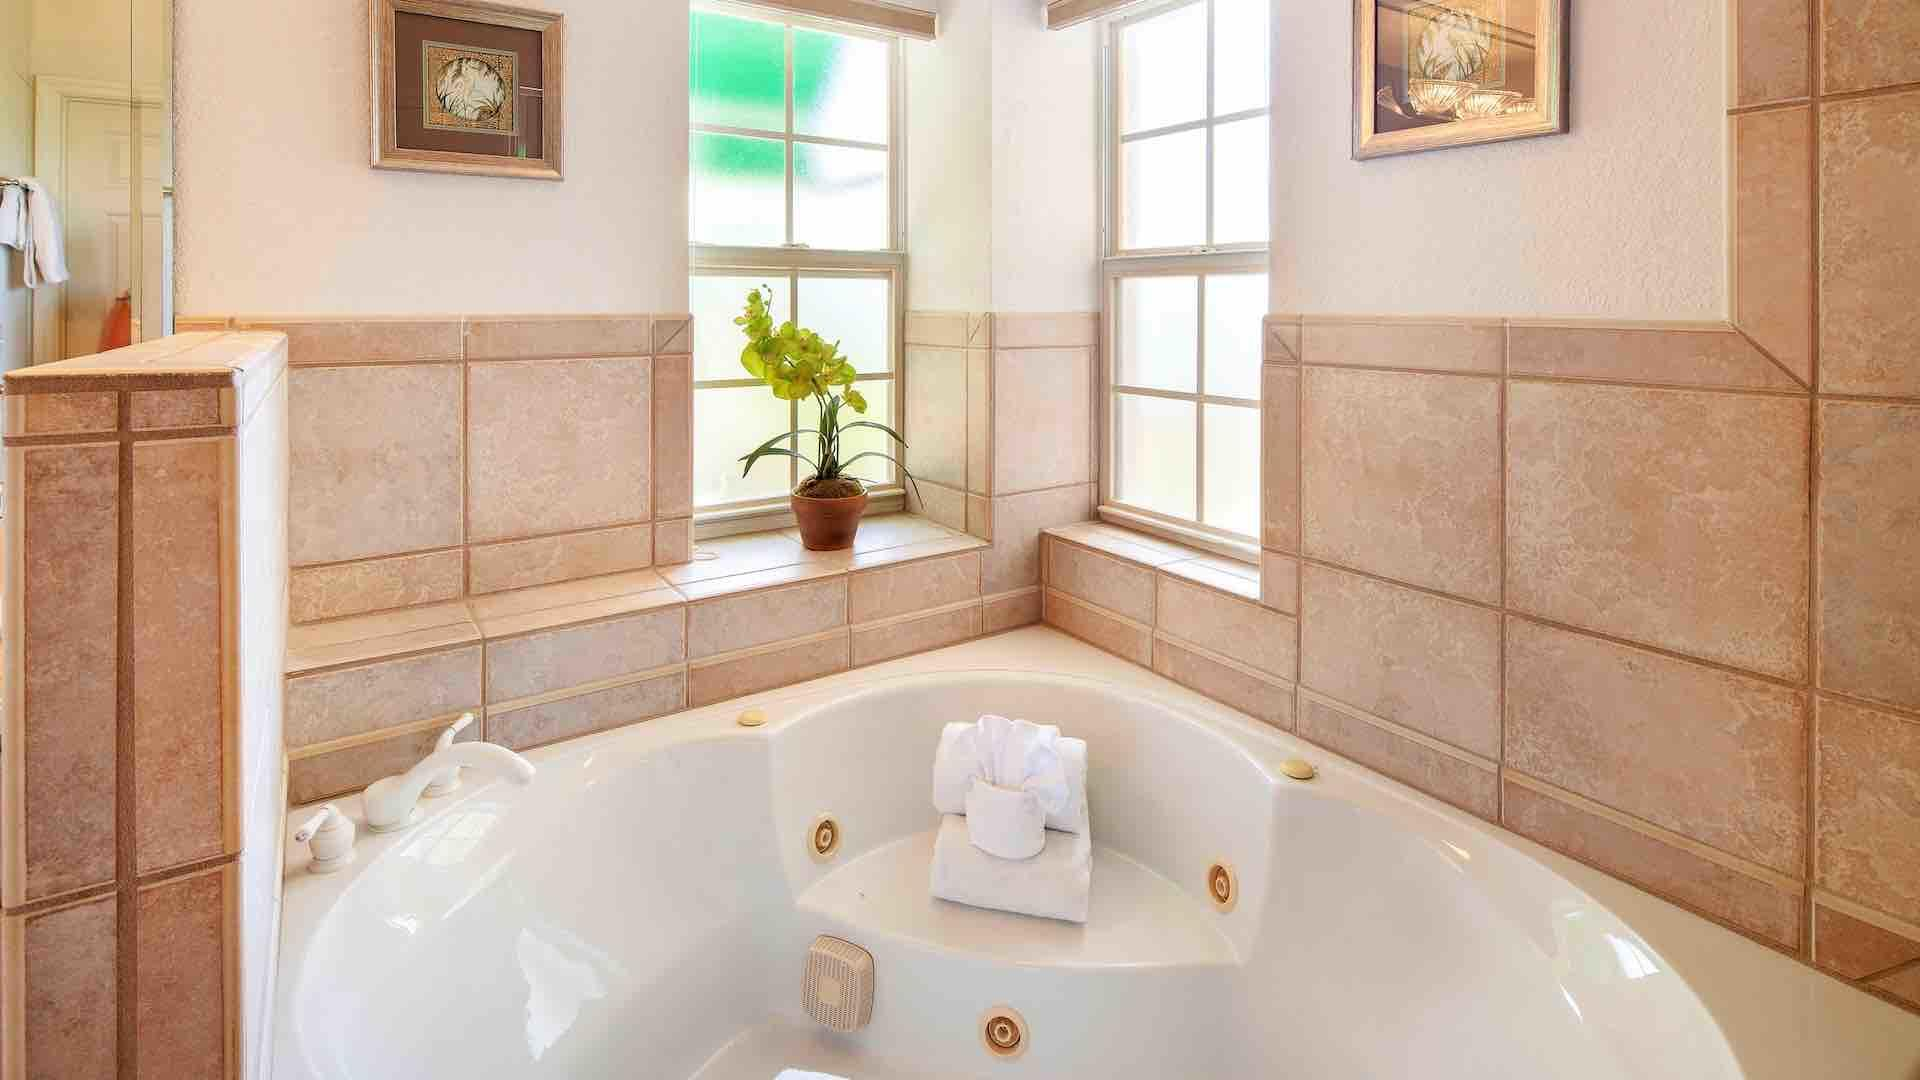 The master bathroom has both a shower and a jacuzzi tub...